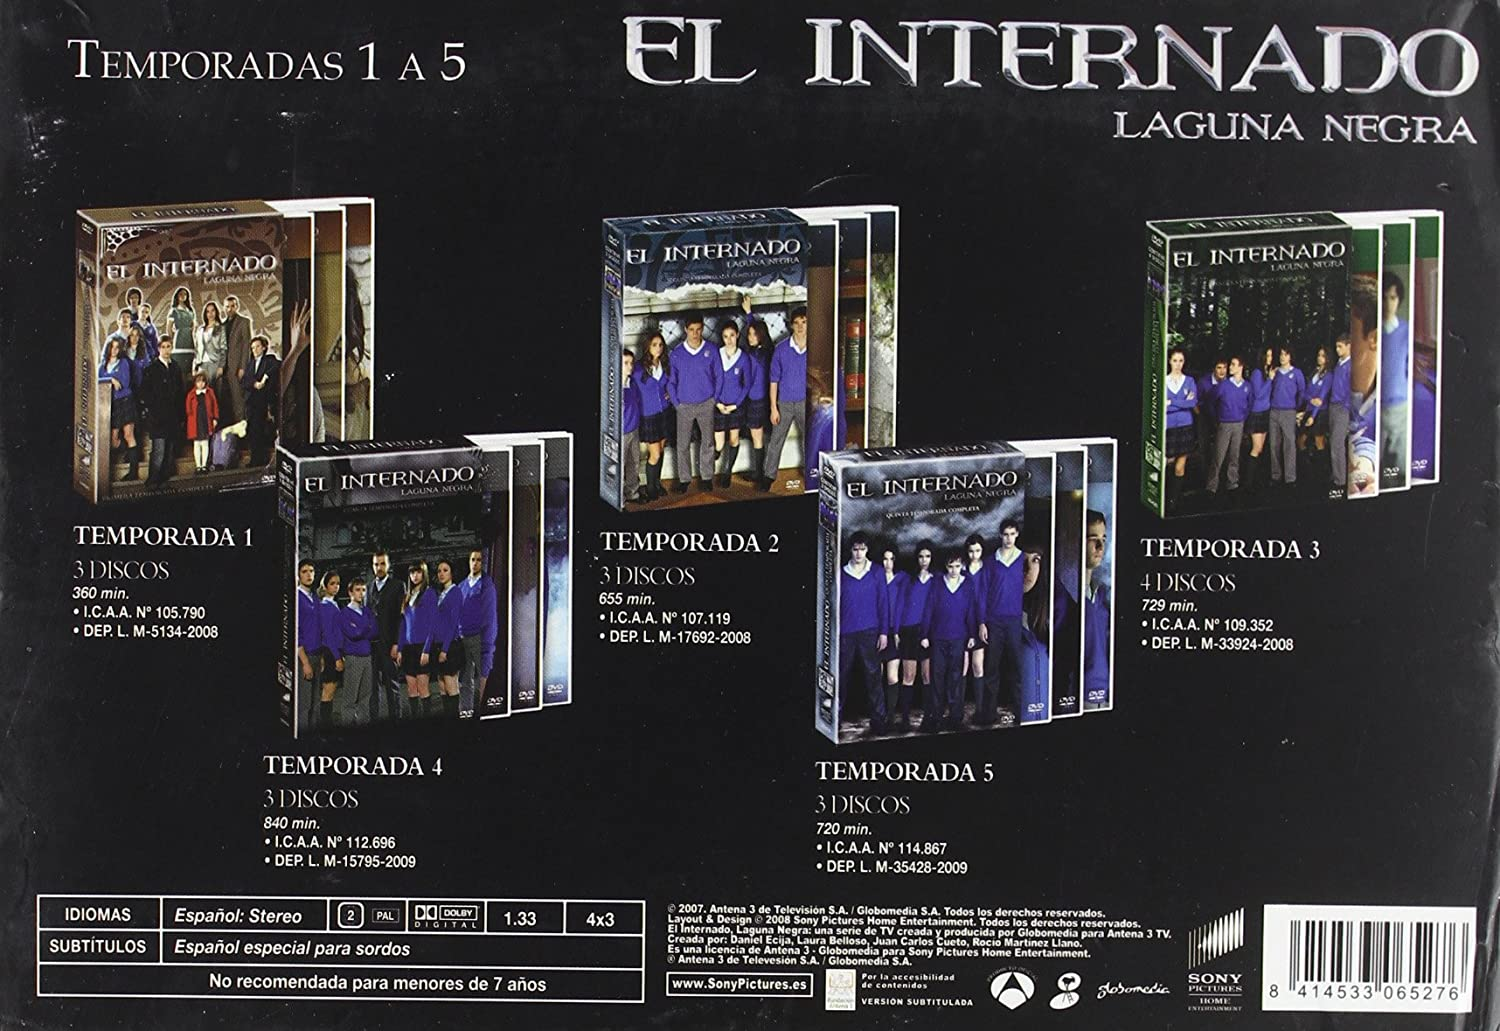 Pack El internado [DVD]: Amazon.es: Amparo Baró, Luis Merlo, Varios: Cine y Series TV